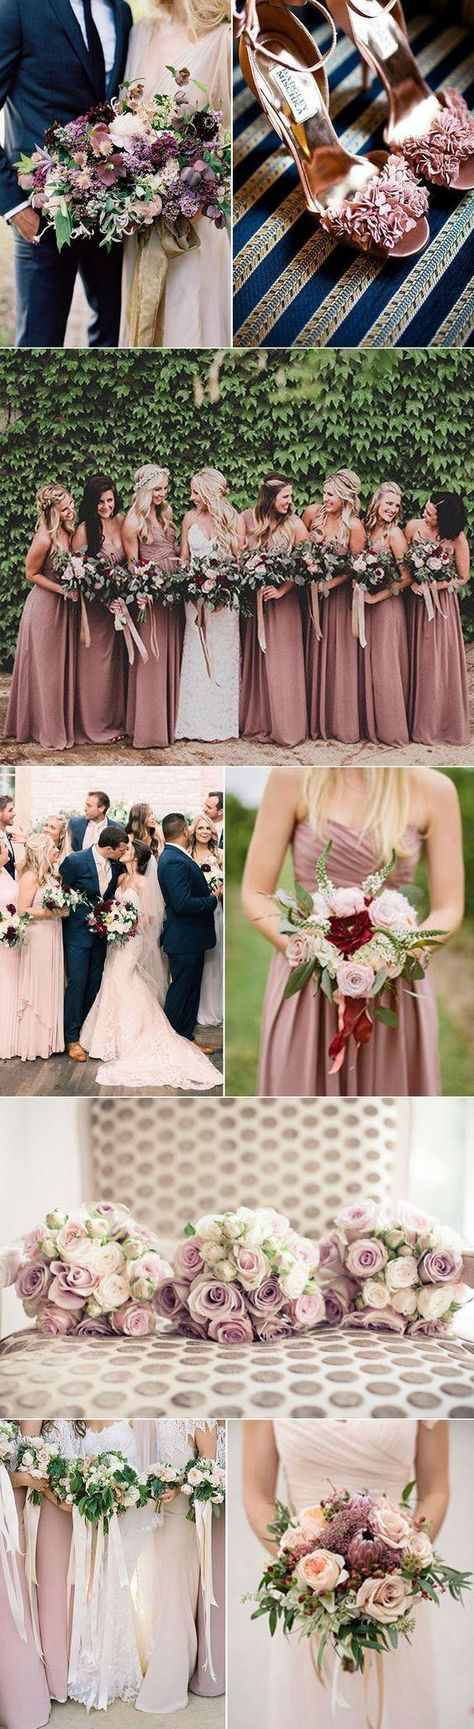 Wedding decorations wood november 2018  best dream wedding dreaming images on Pinterest  Marriage